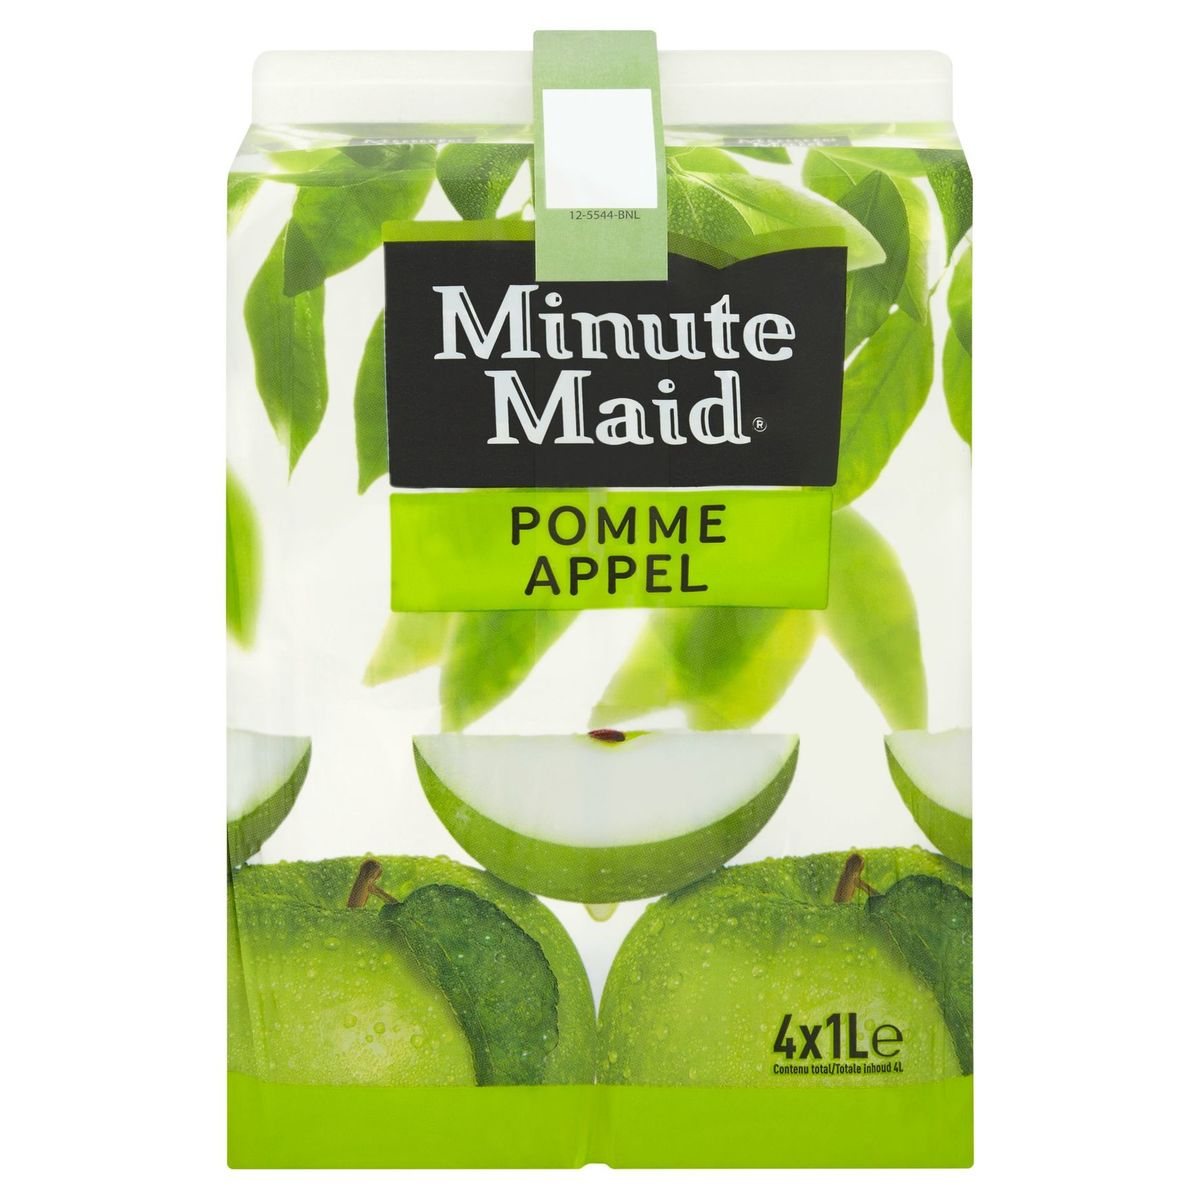 Minute Maid Pomme 4 x 1 L